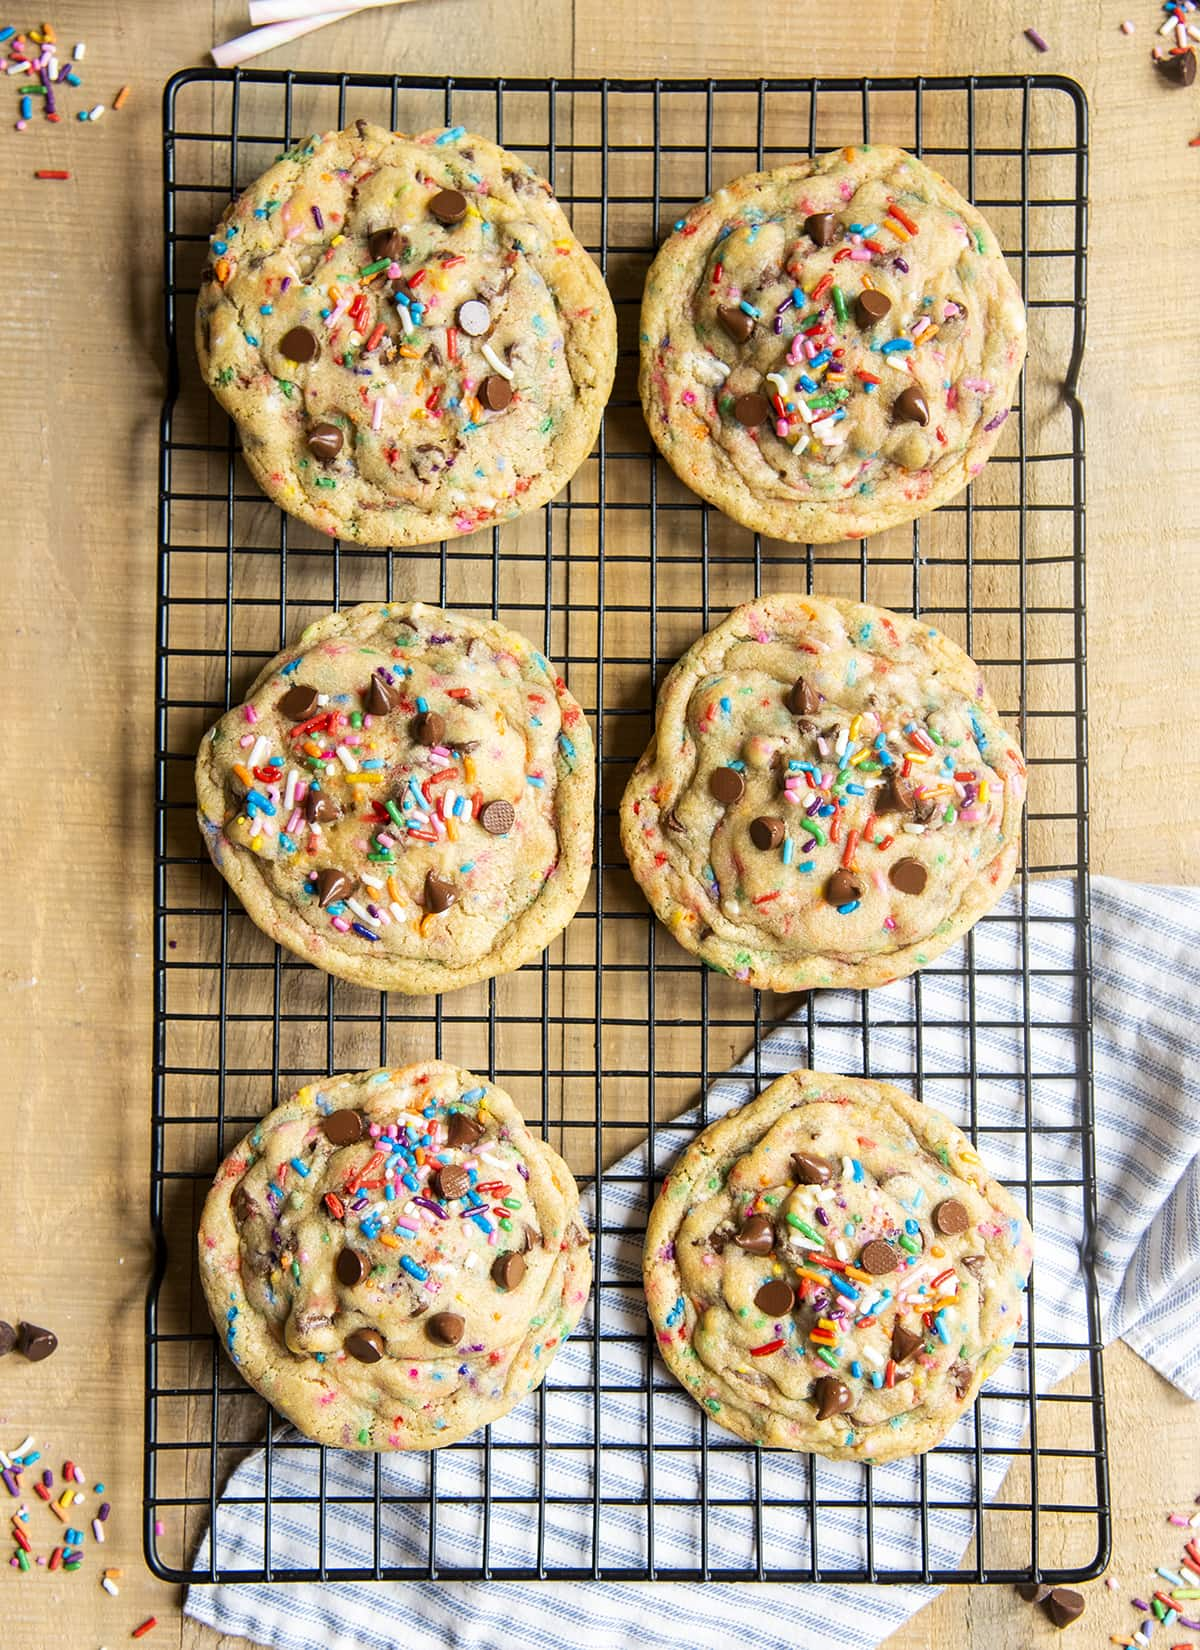 An overhead photo of 6 giant chocolate chip funfetti cookies on a cooling rack.